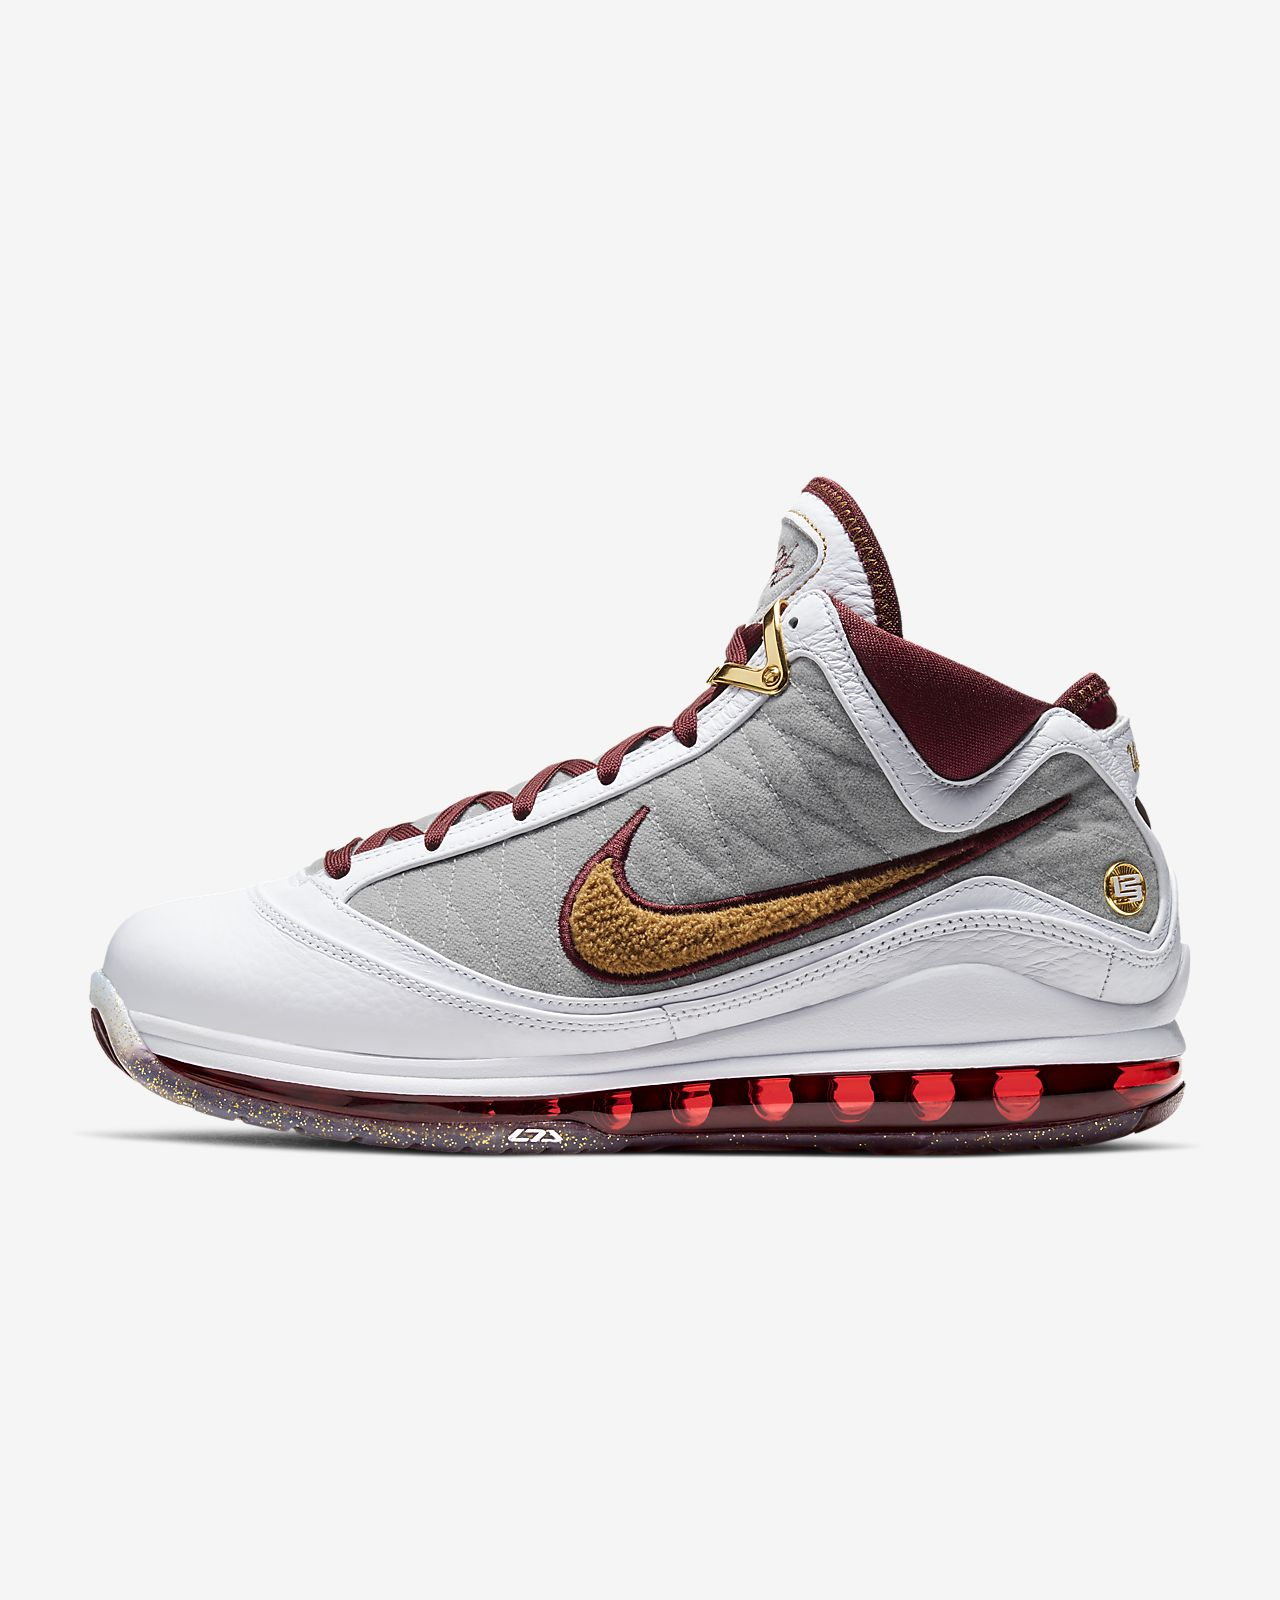 Nike LeBron 7 Men's Shoe